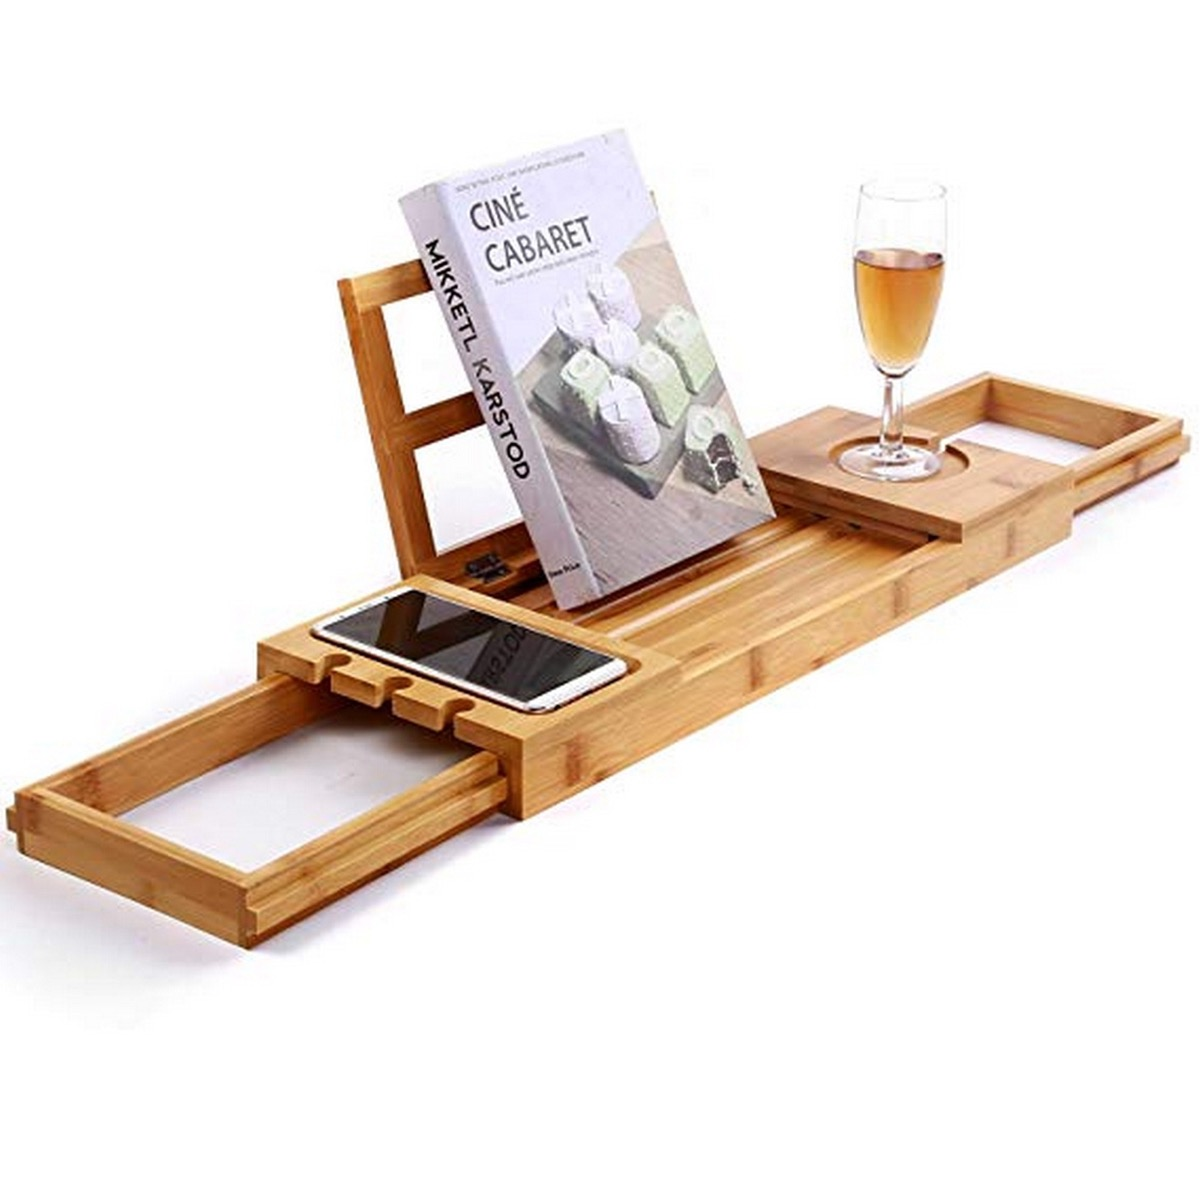 wooden tray with book and champagne and phone on it, bathroom accessories